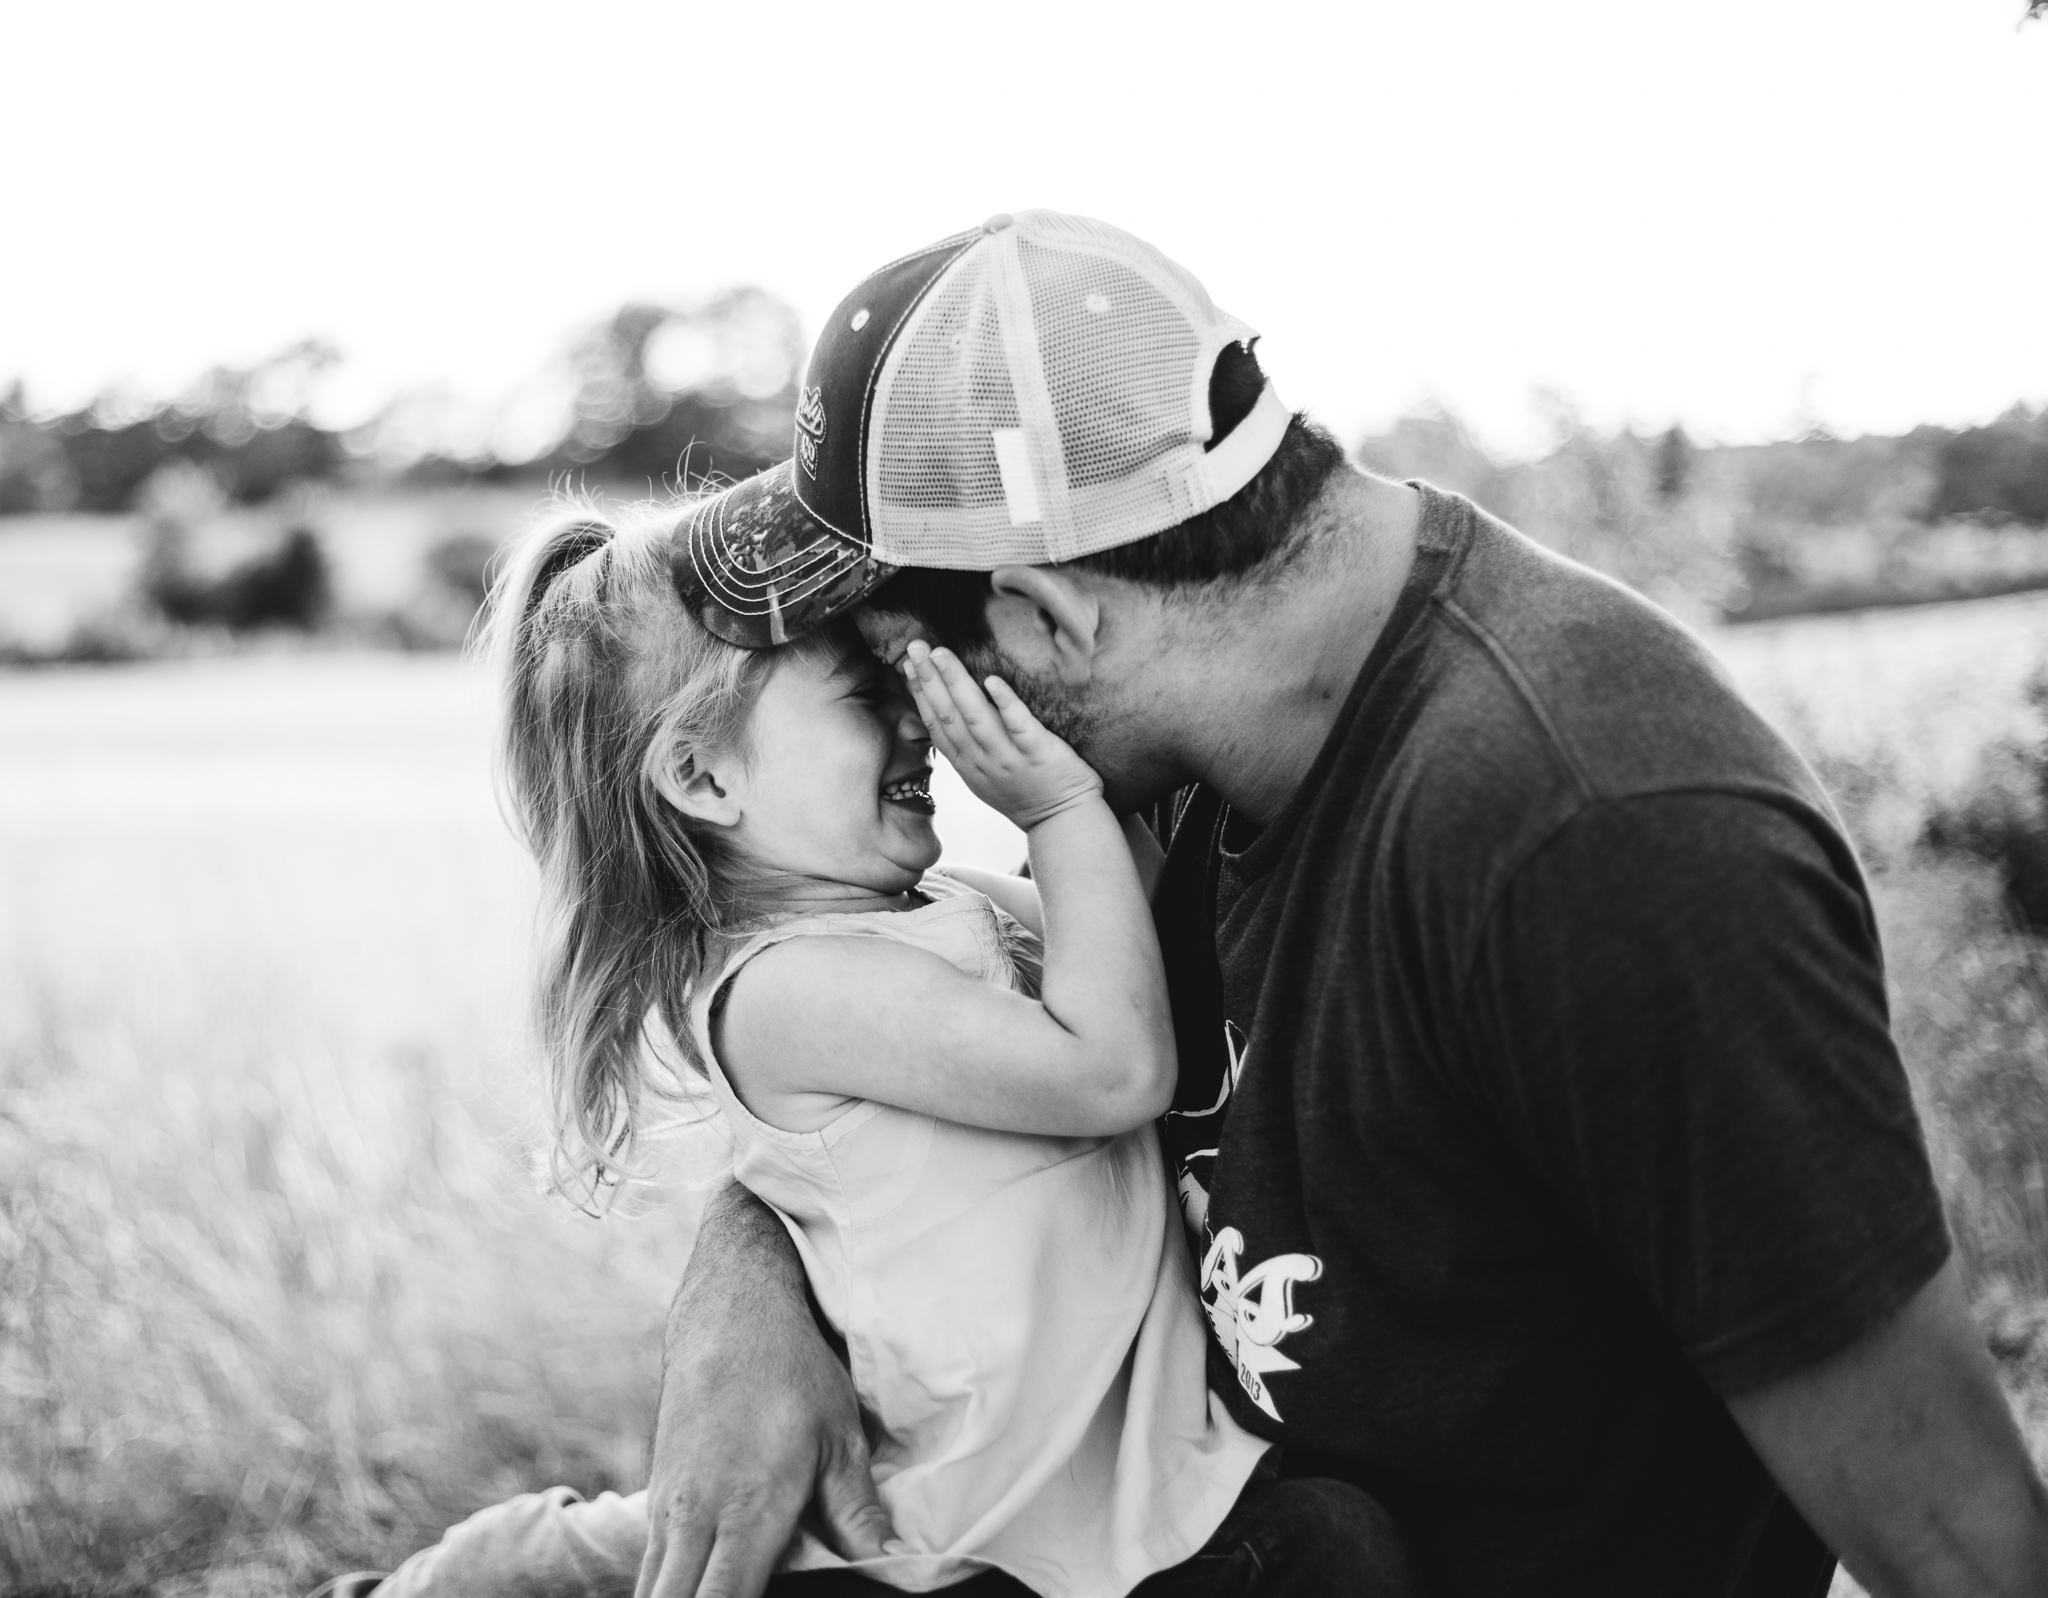 southern-maine-photographer-capturing-natural-moments-fatherhood-family-daughter.jpg